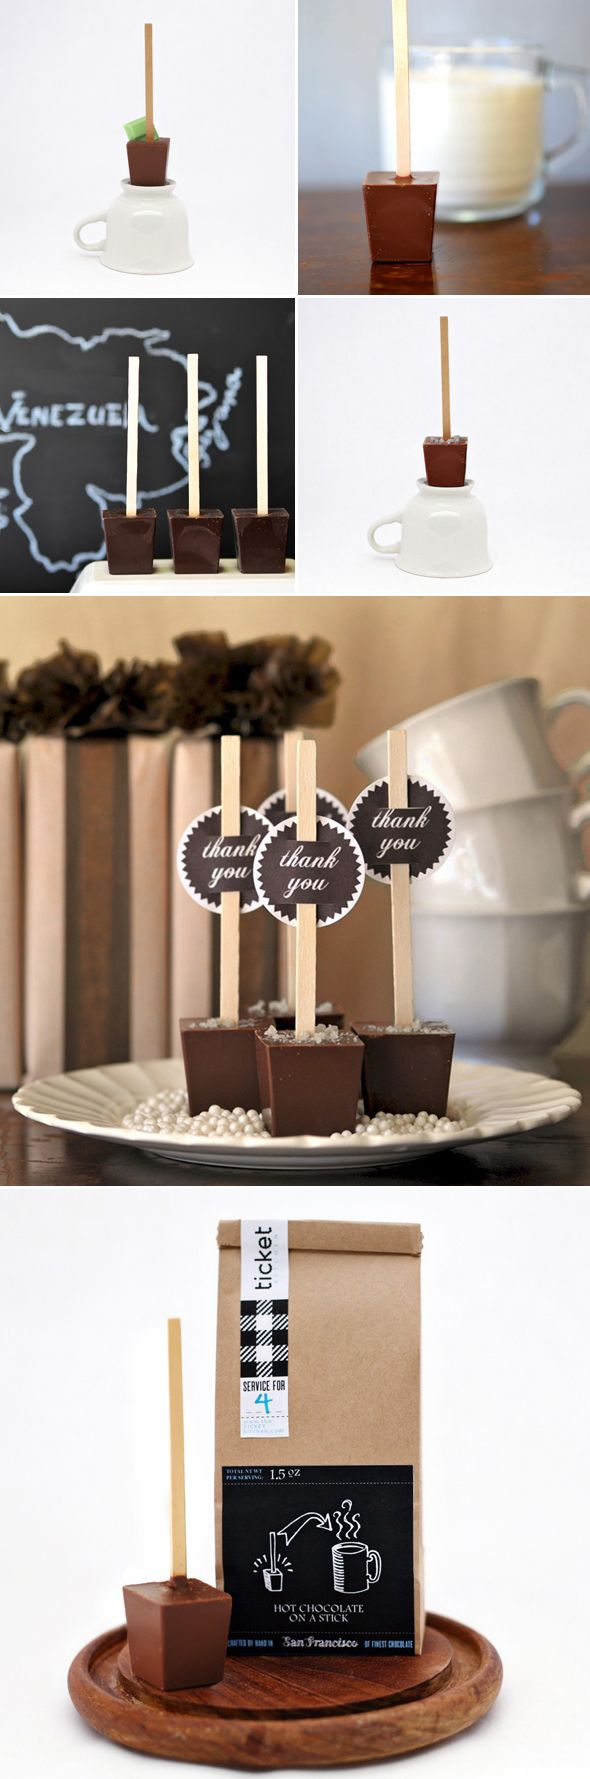 TICKET chocolate - hot chocolate on a stick. Love it and *highly* recommend making their dark varieties with water - SO good!